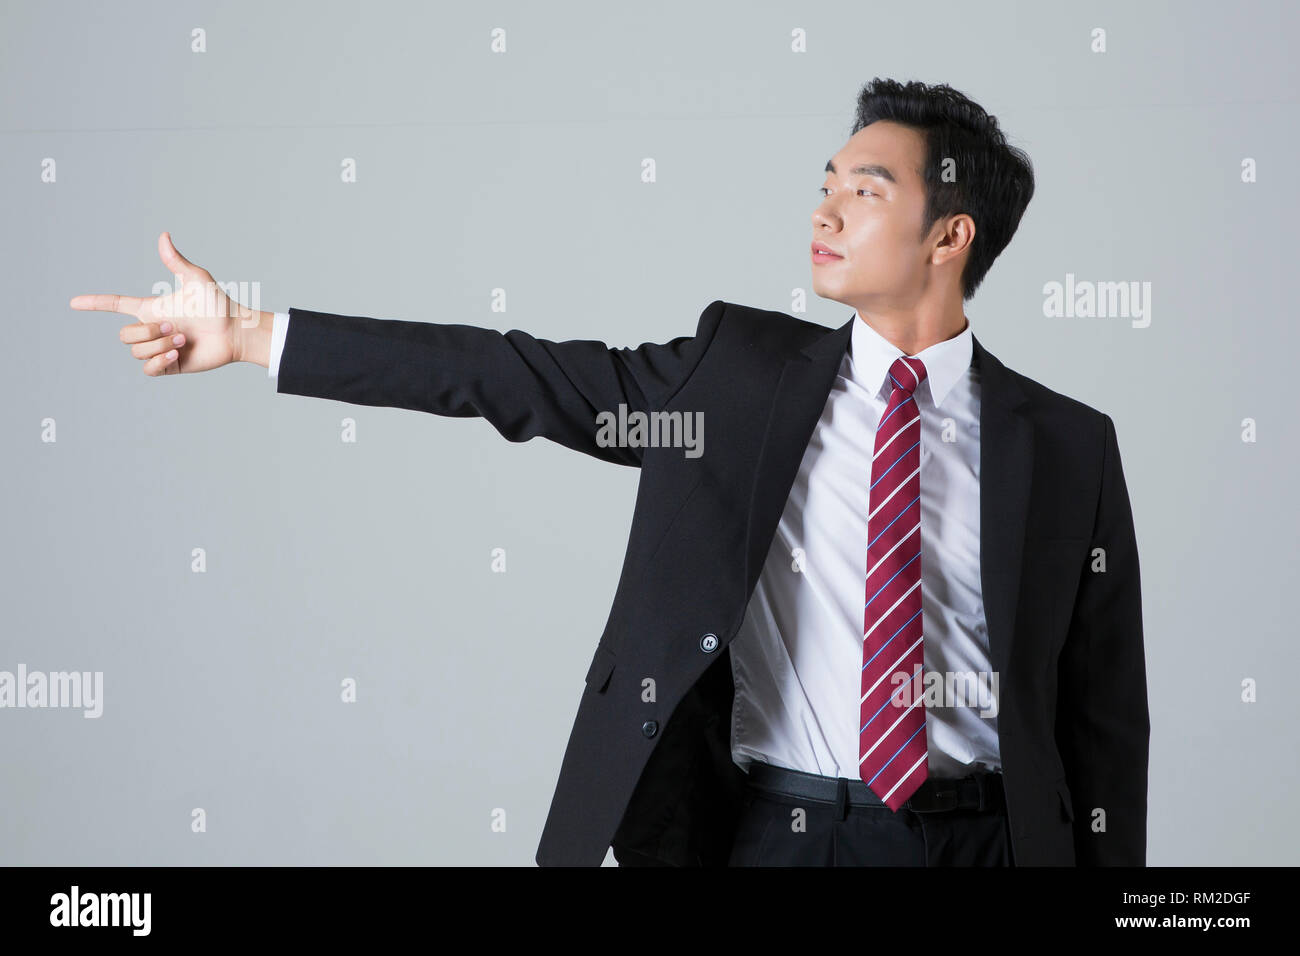 Young businessman concept photo. 033 - Stock Image